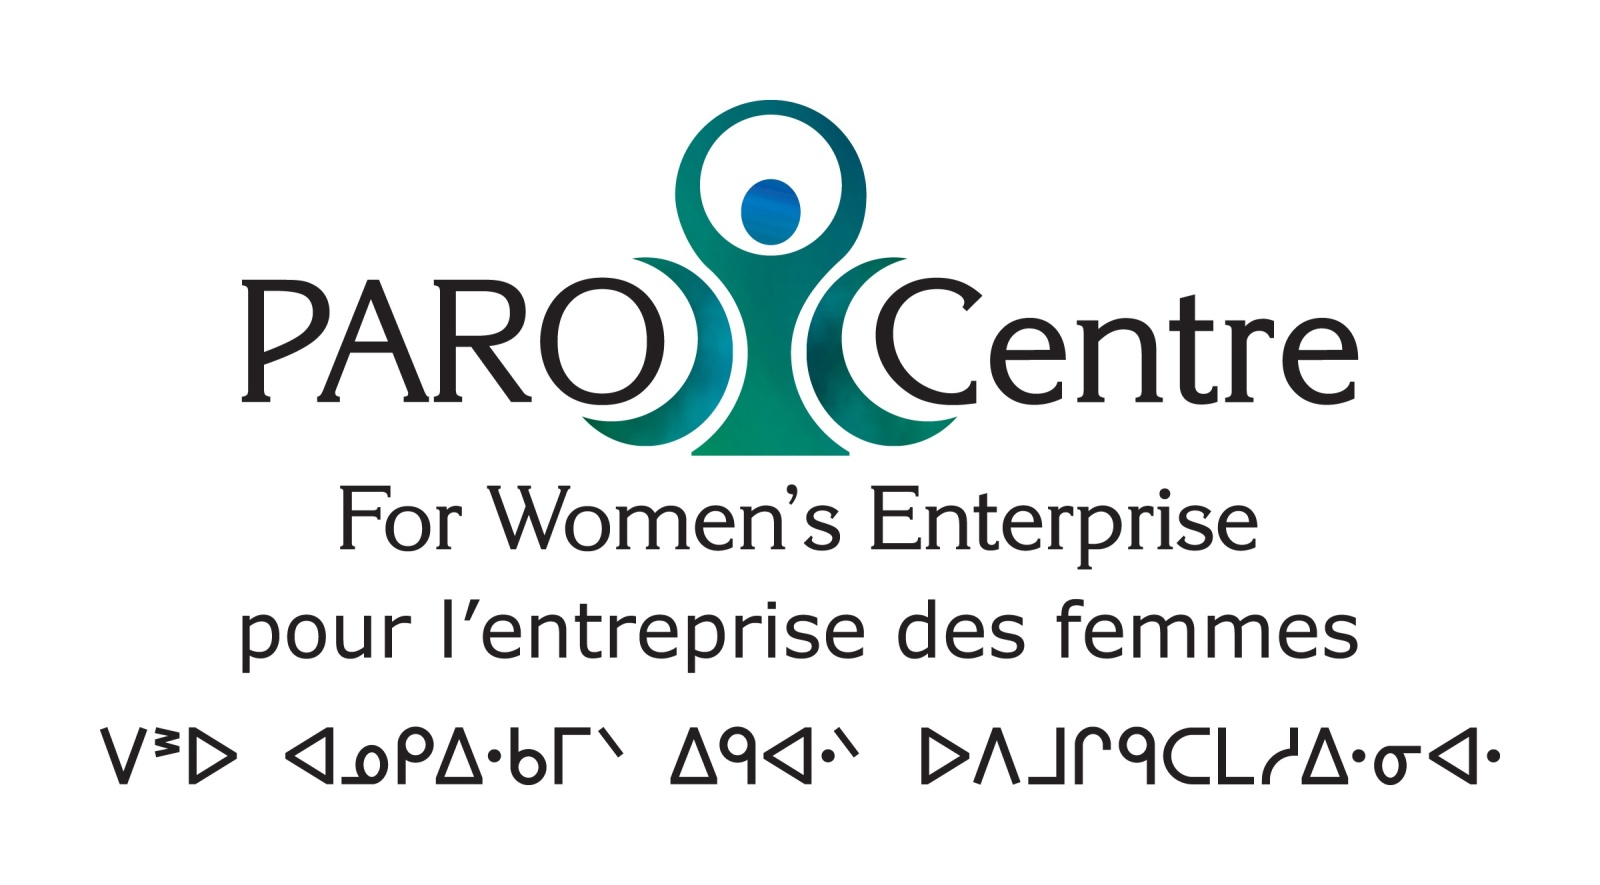 PARO Centre for Womens Enterprise